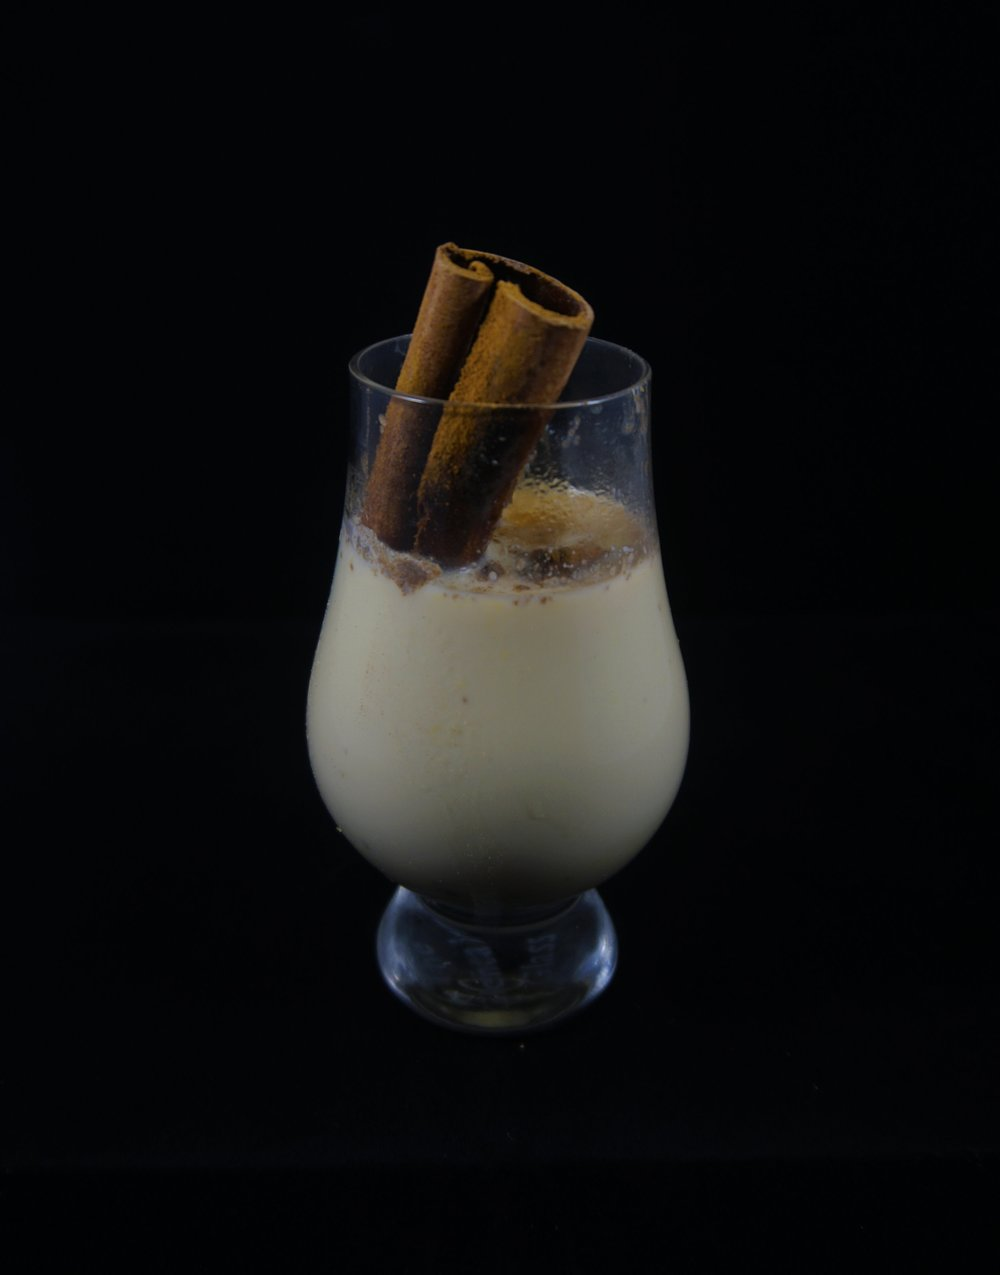 Cormchata - 1 15.25oz can of sweet corn2 cups whole milk2 Tlbs of sugarPinch of kosher saltCinnamon stick3oz amaretto0.75oz arakkuGround cinnamon, to taste Purée corn and 2/3 cup of milk. Transfer to pot and add remaining milk, sugar, salt and cinnamon stick. Bring to boil and simmer 2-3 minutes. Strain. Return to pot and stir in amaretto and arakku. Top with ground cinnamon, to taste.